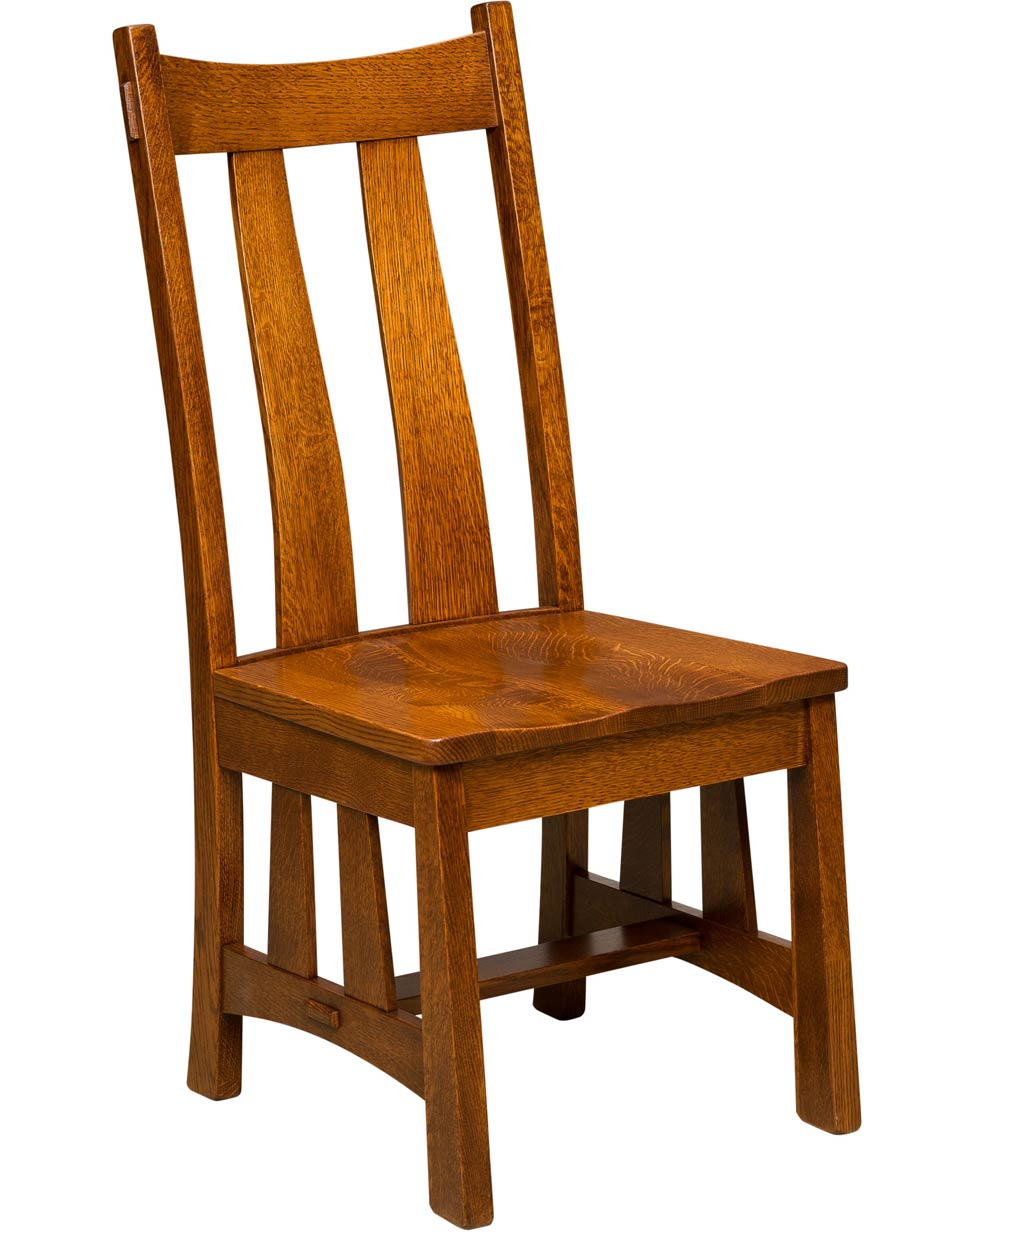 Dining chairs direct darden set of